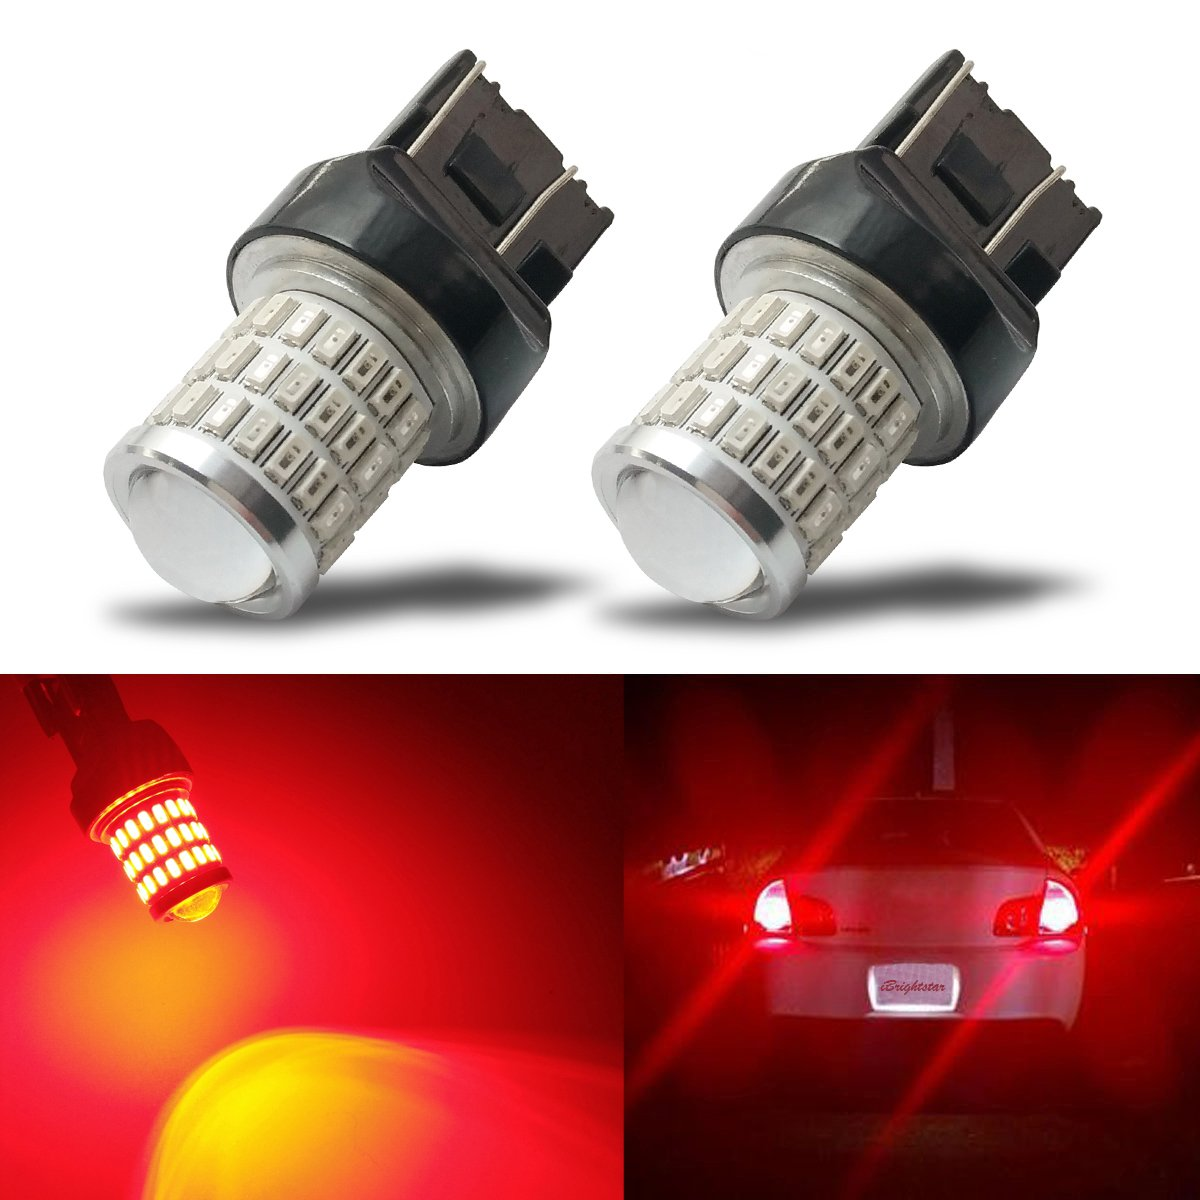 Replace tails and turns with LED bulbs 71oje4eEeML._SL1200_